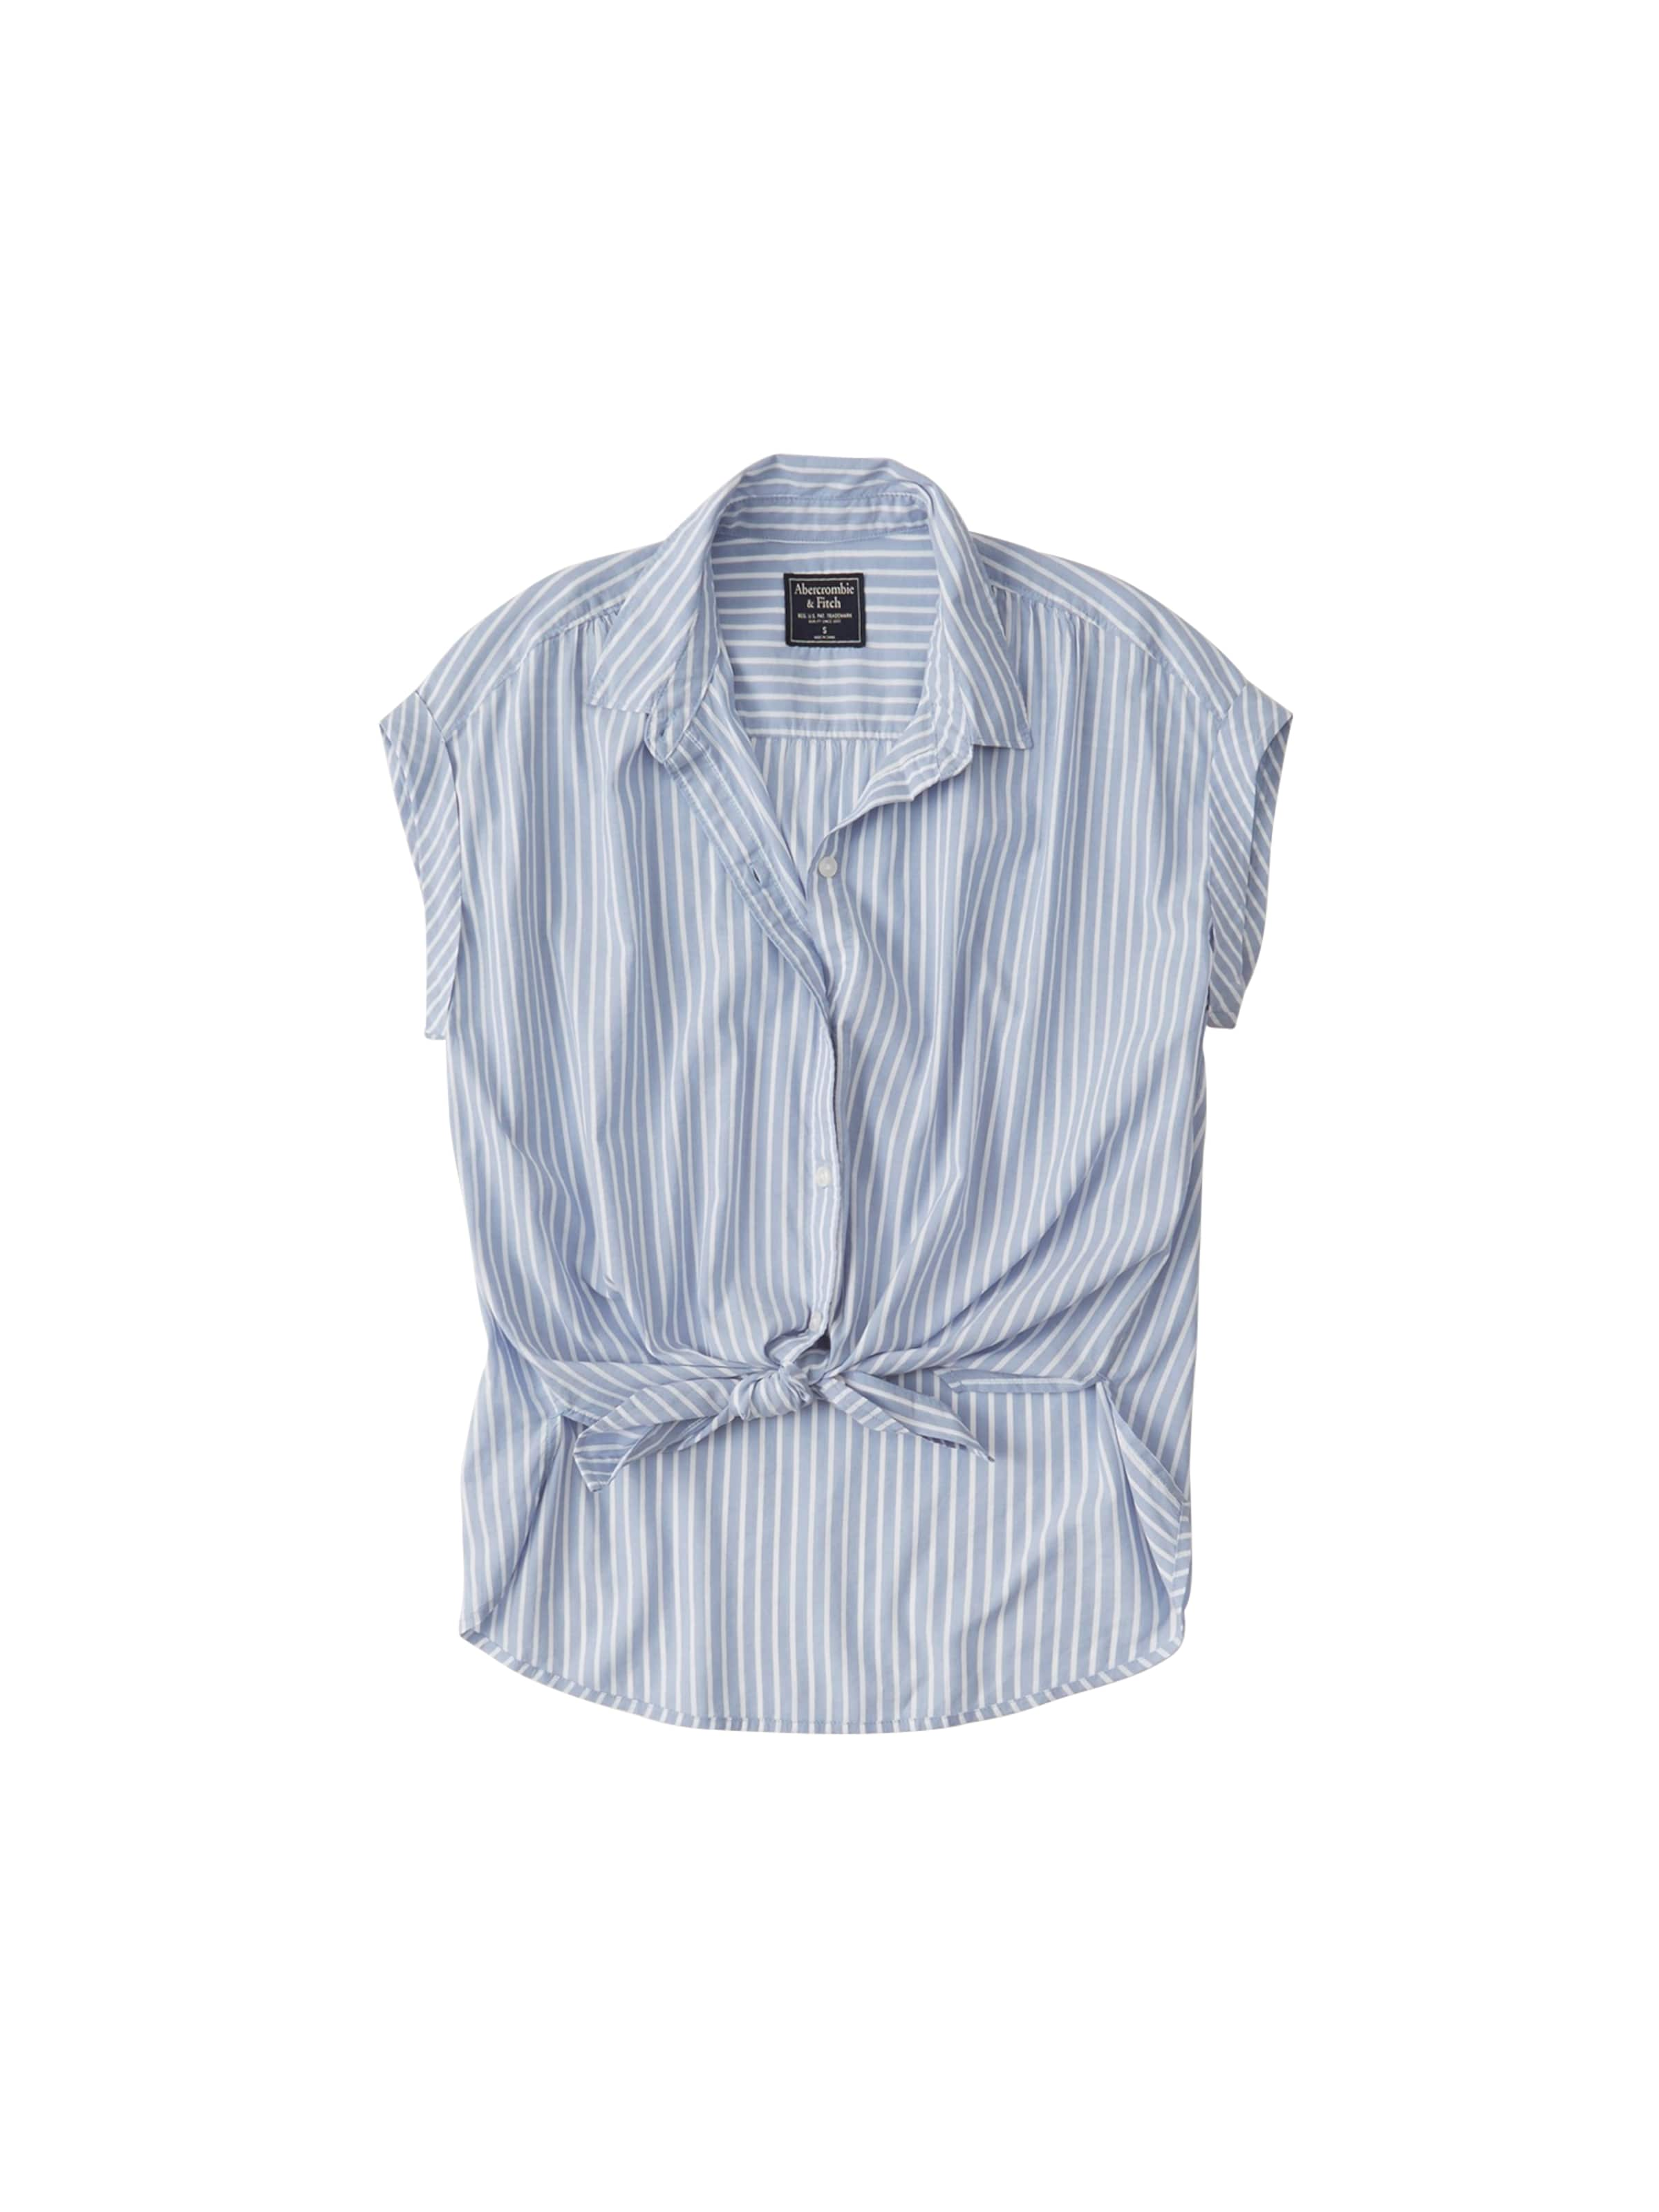 Fitch Abercrombieamp; Chemisier BleuBlanc Fitch Abercrombieamp; Chemisier BleuBlanc En En Fitch Abercrombieamp; e2bDWIEH9Y